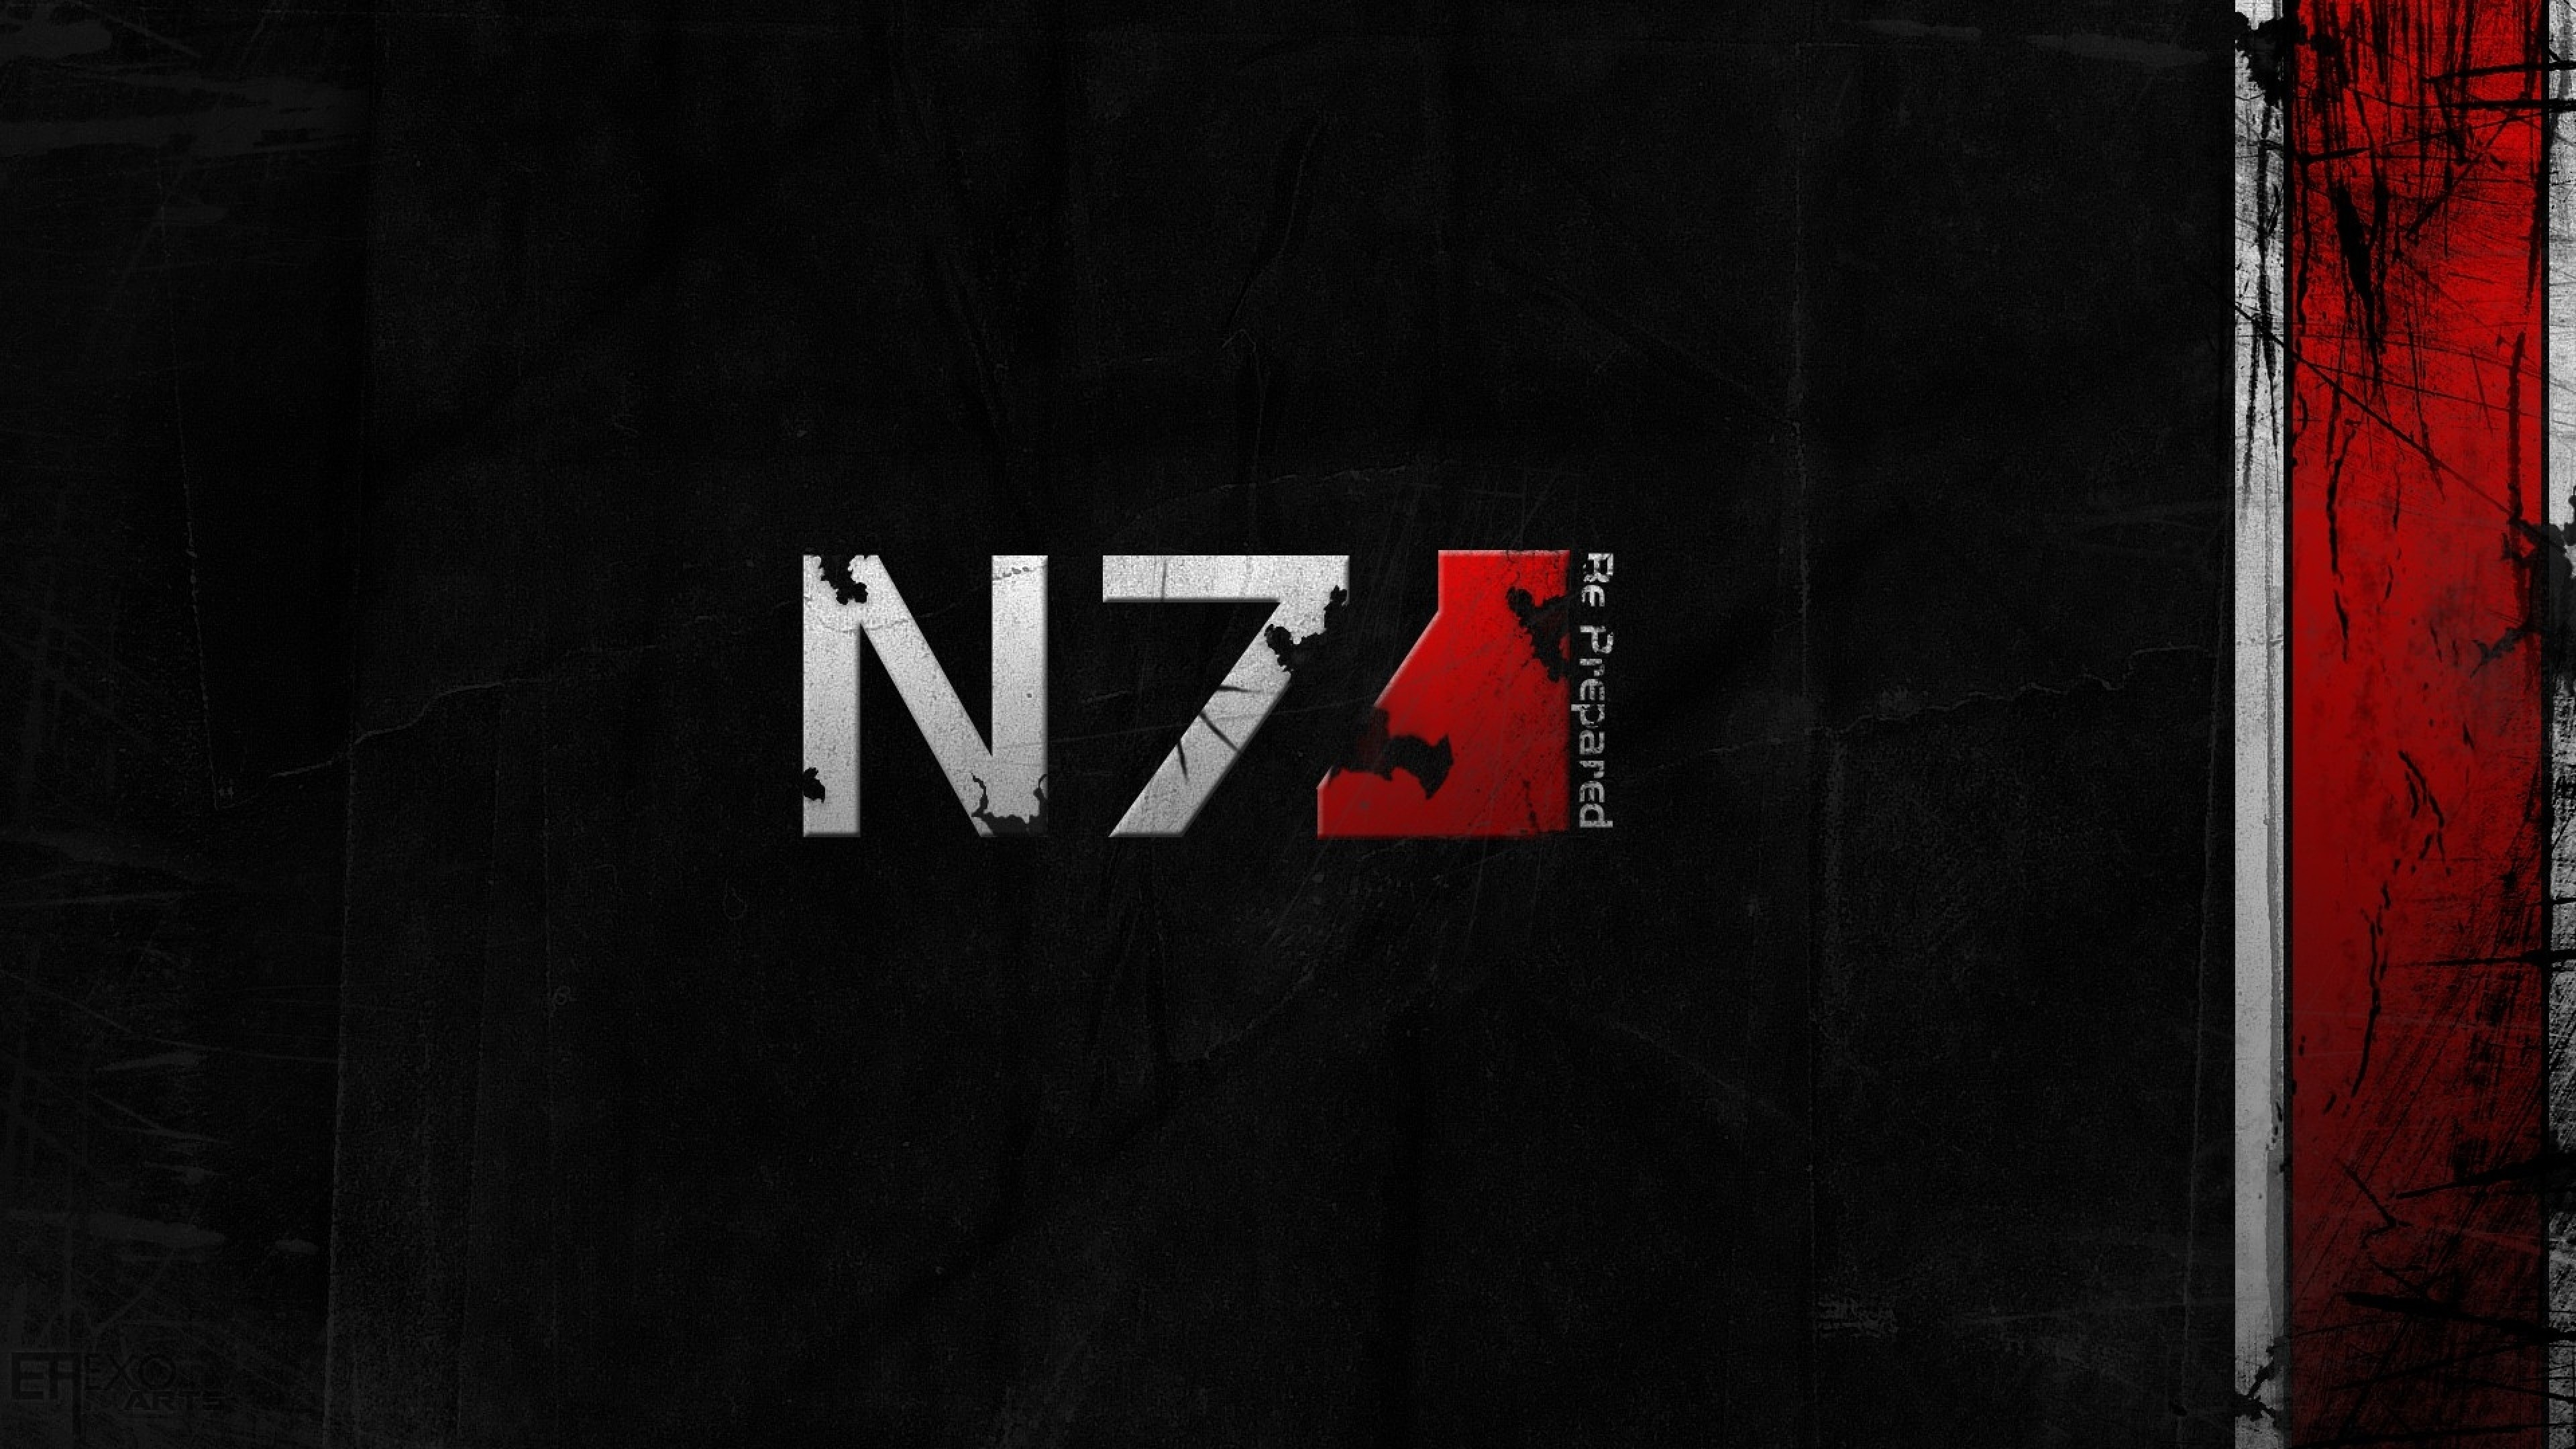 Preview wallpaper mass effect 3, n7, font, graphics, background 3840×2160